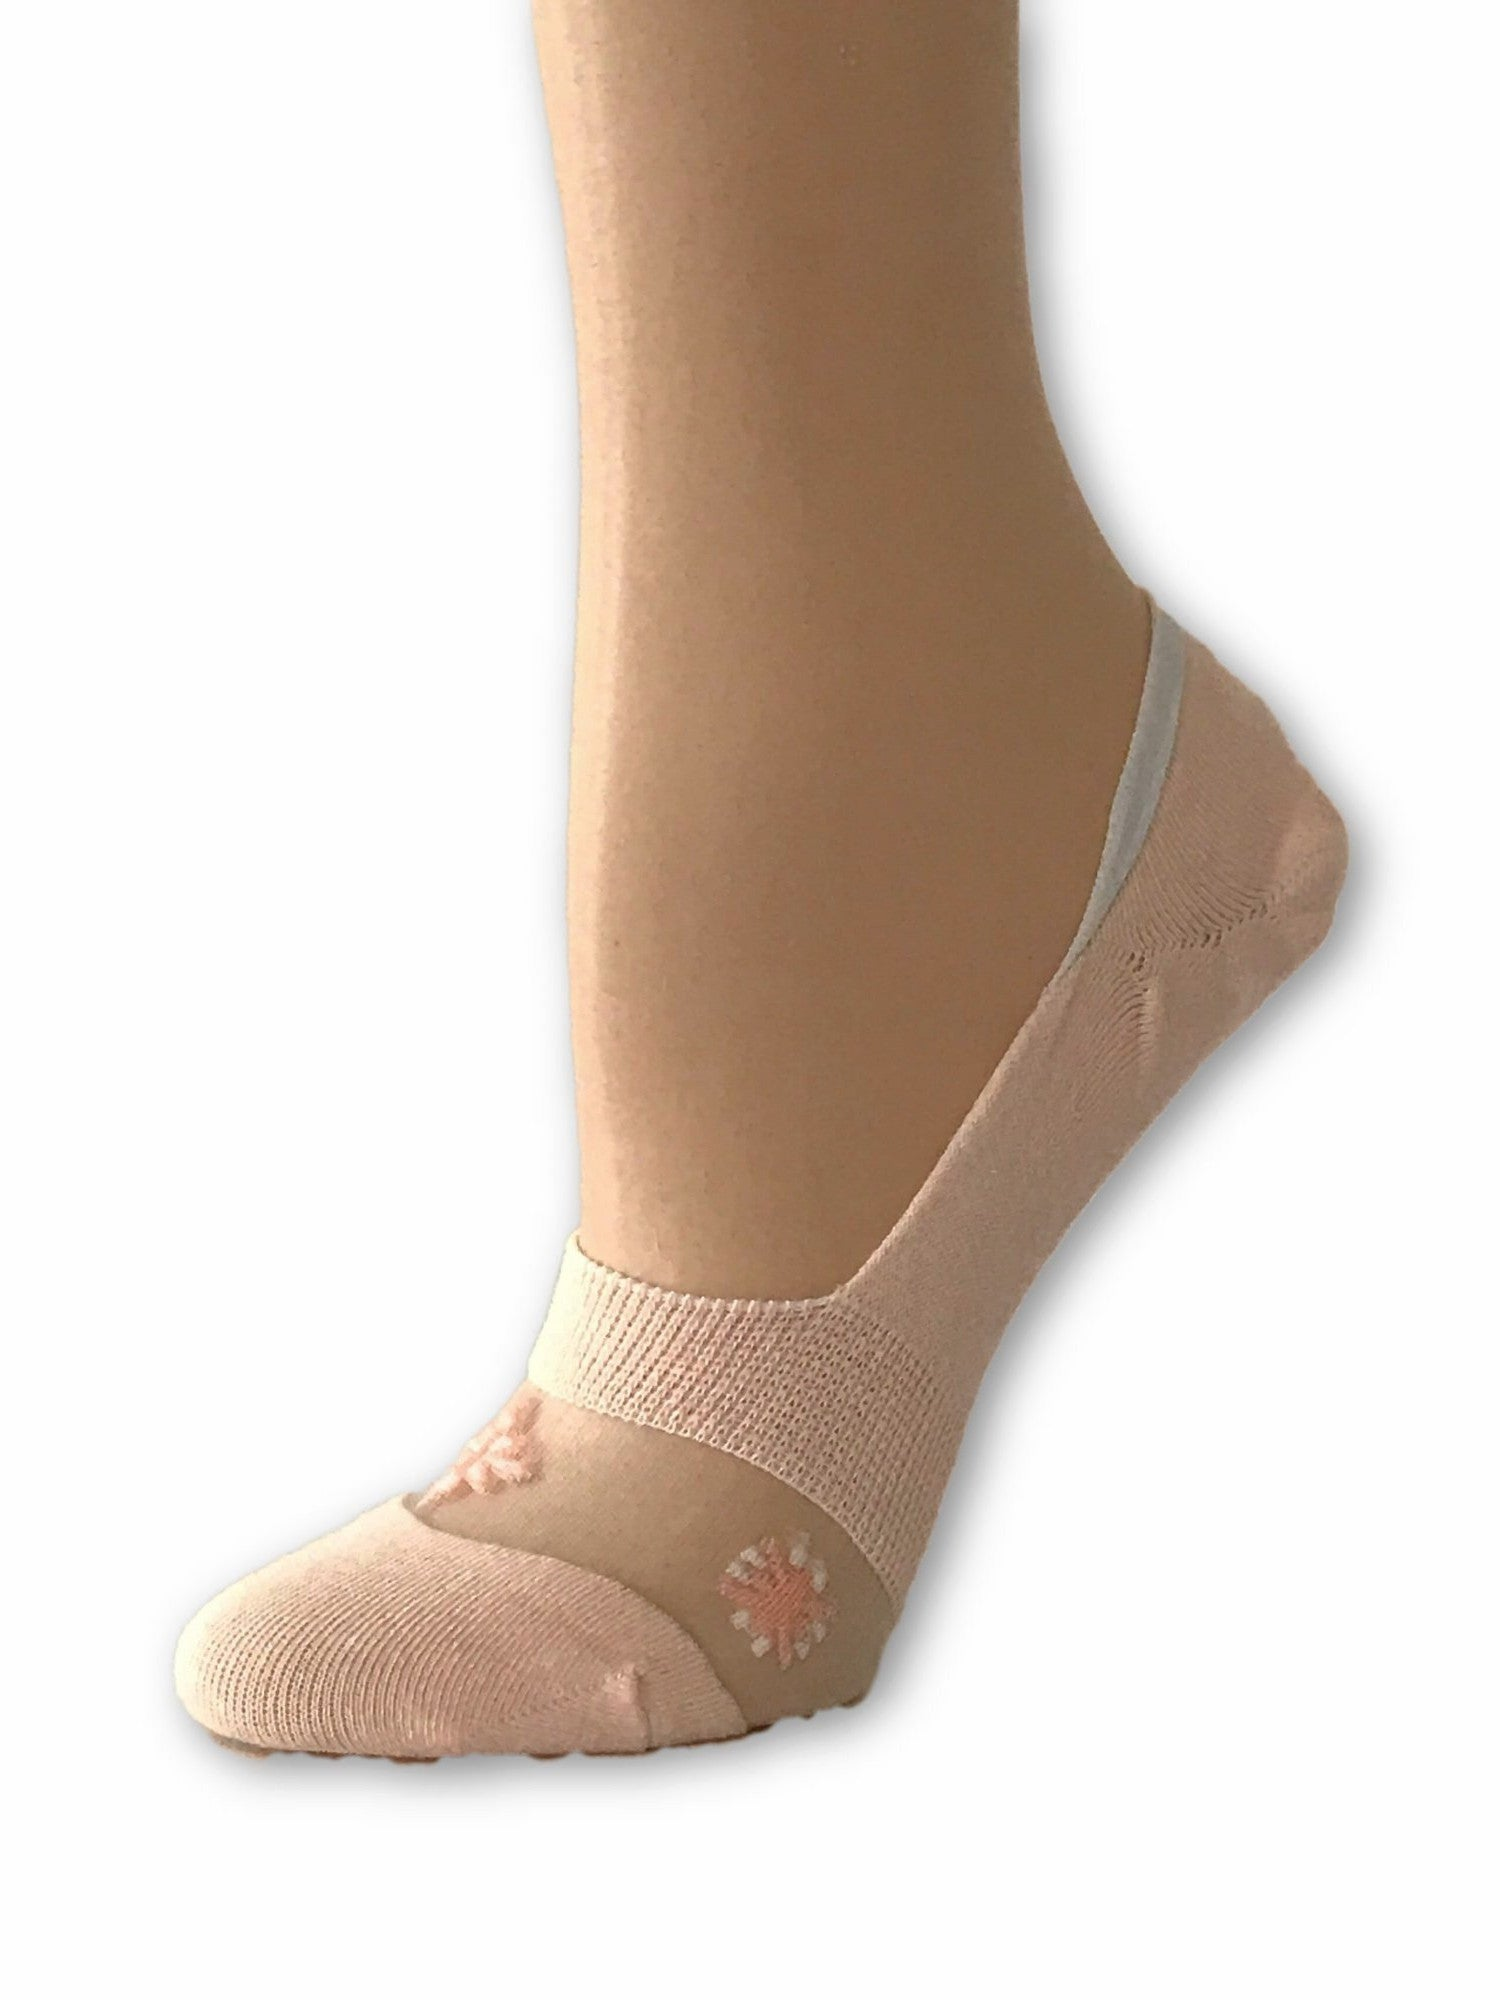 One-Stripped Baby Pink Ankle Sheer Socks - Global Trendz Fashion®